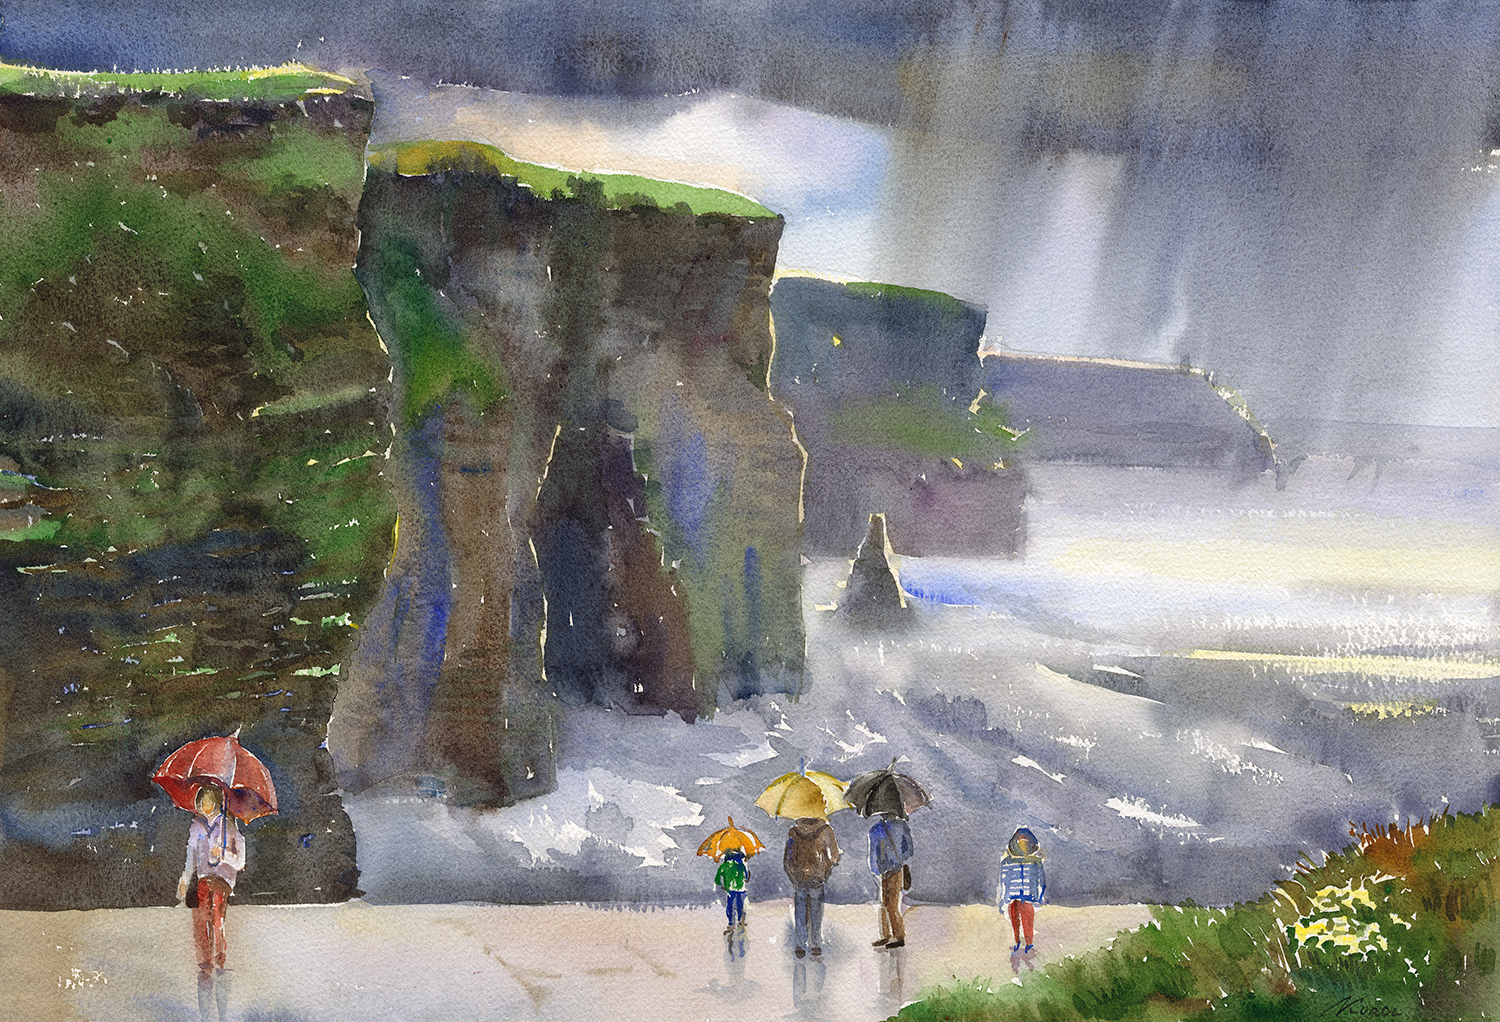 Painting by Irish Ukrainian artist Ludmila Korol. Scene of people with umbrellas looking out over the Cliffs of Moher in Co. Clare, Ireland. Rain sheets can be seen falling from the clouds but the light is also shining through onto the water. It is easy to see the immensity of this beautiful natural wonder by comparing the size of the people in the foreground against the height of the cliffs. Pictured is a family of four with another lady holding a red umbrella standing separately.